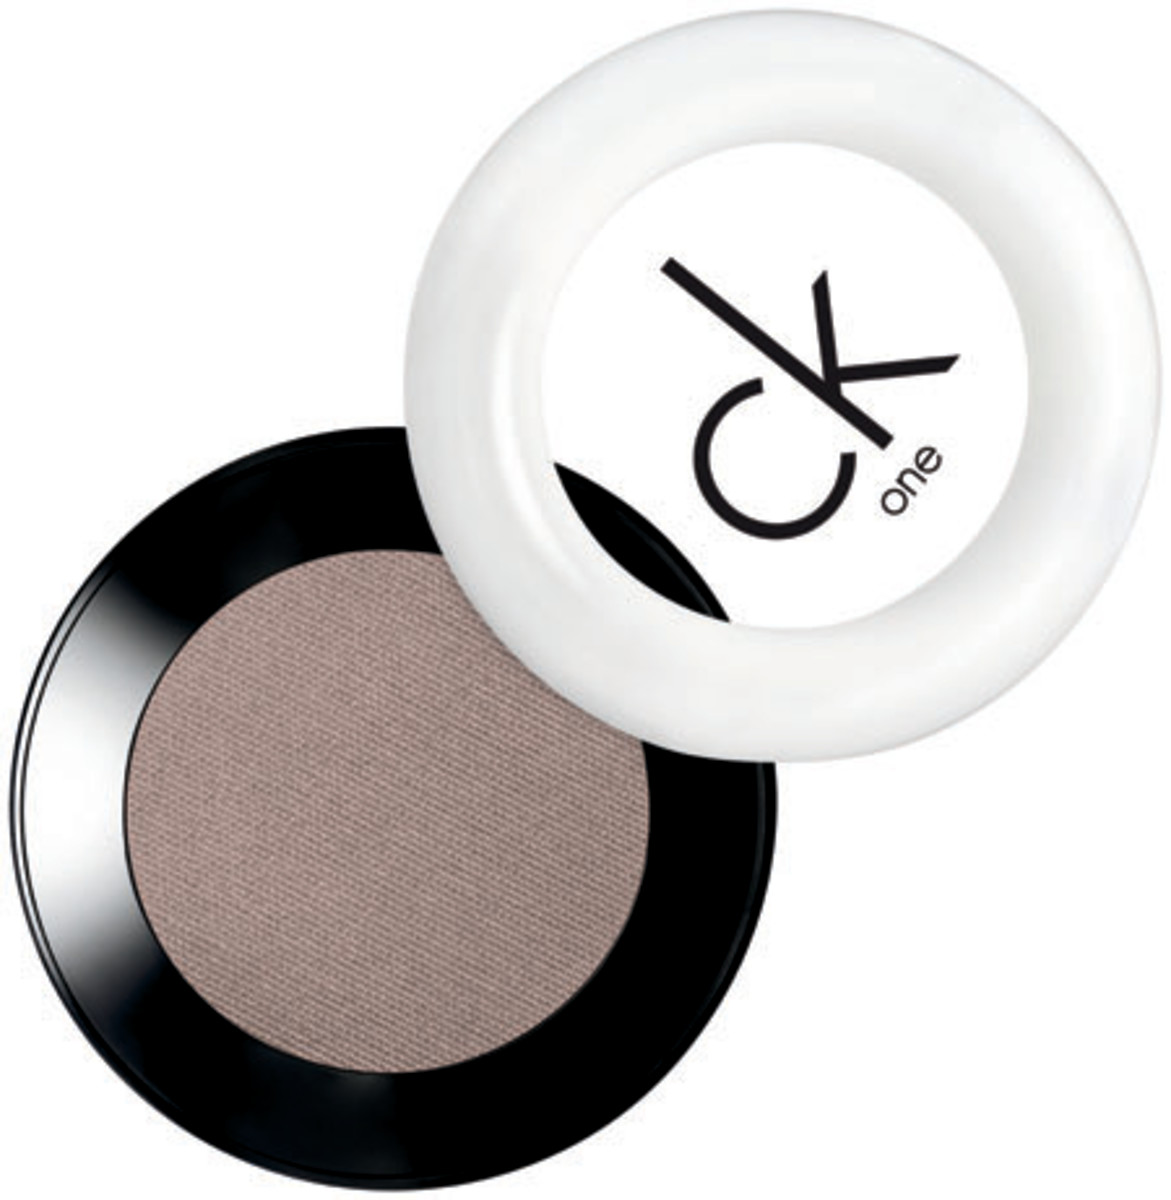 CK One Color Powder Eyeshadow in Evolved